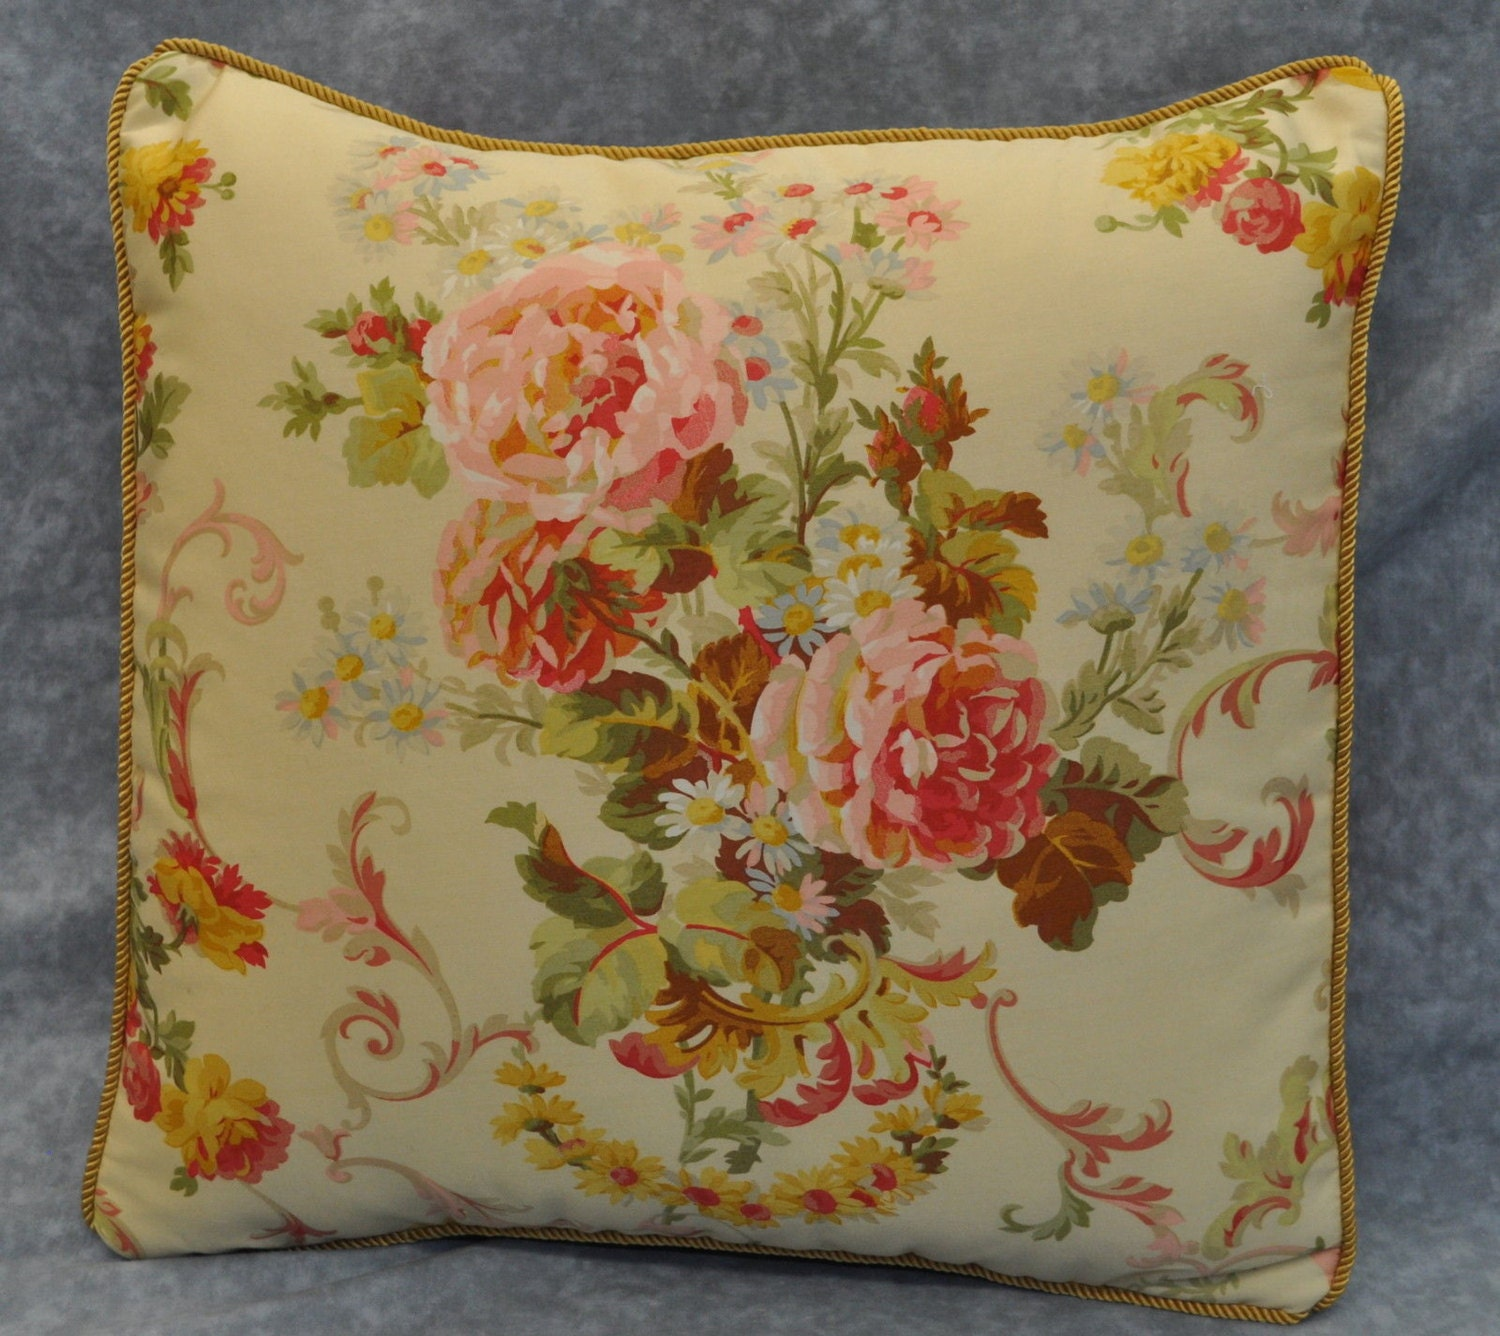 Decorative Pillows Floral Pillows Shabby Chic Pillows